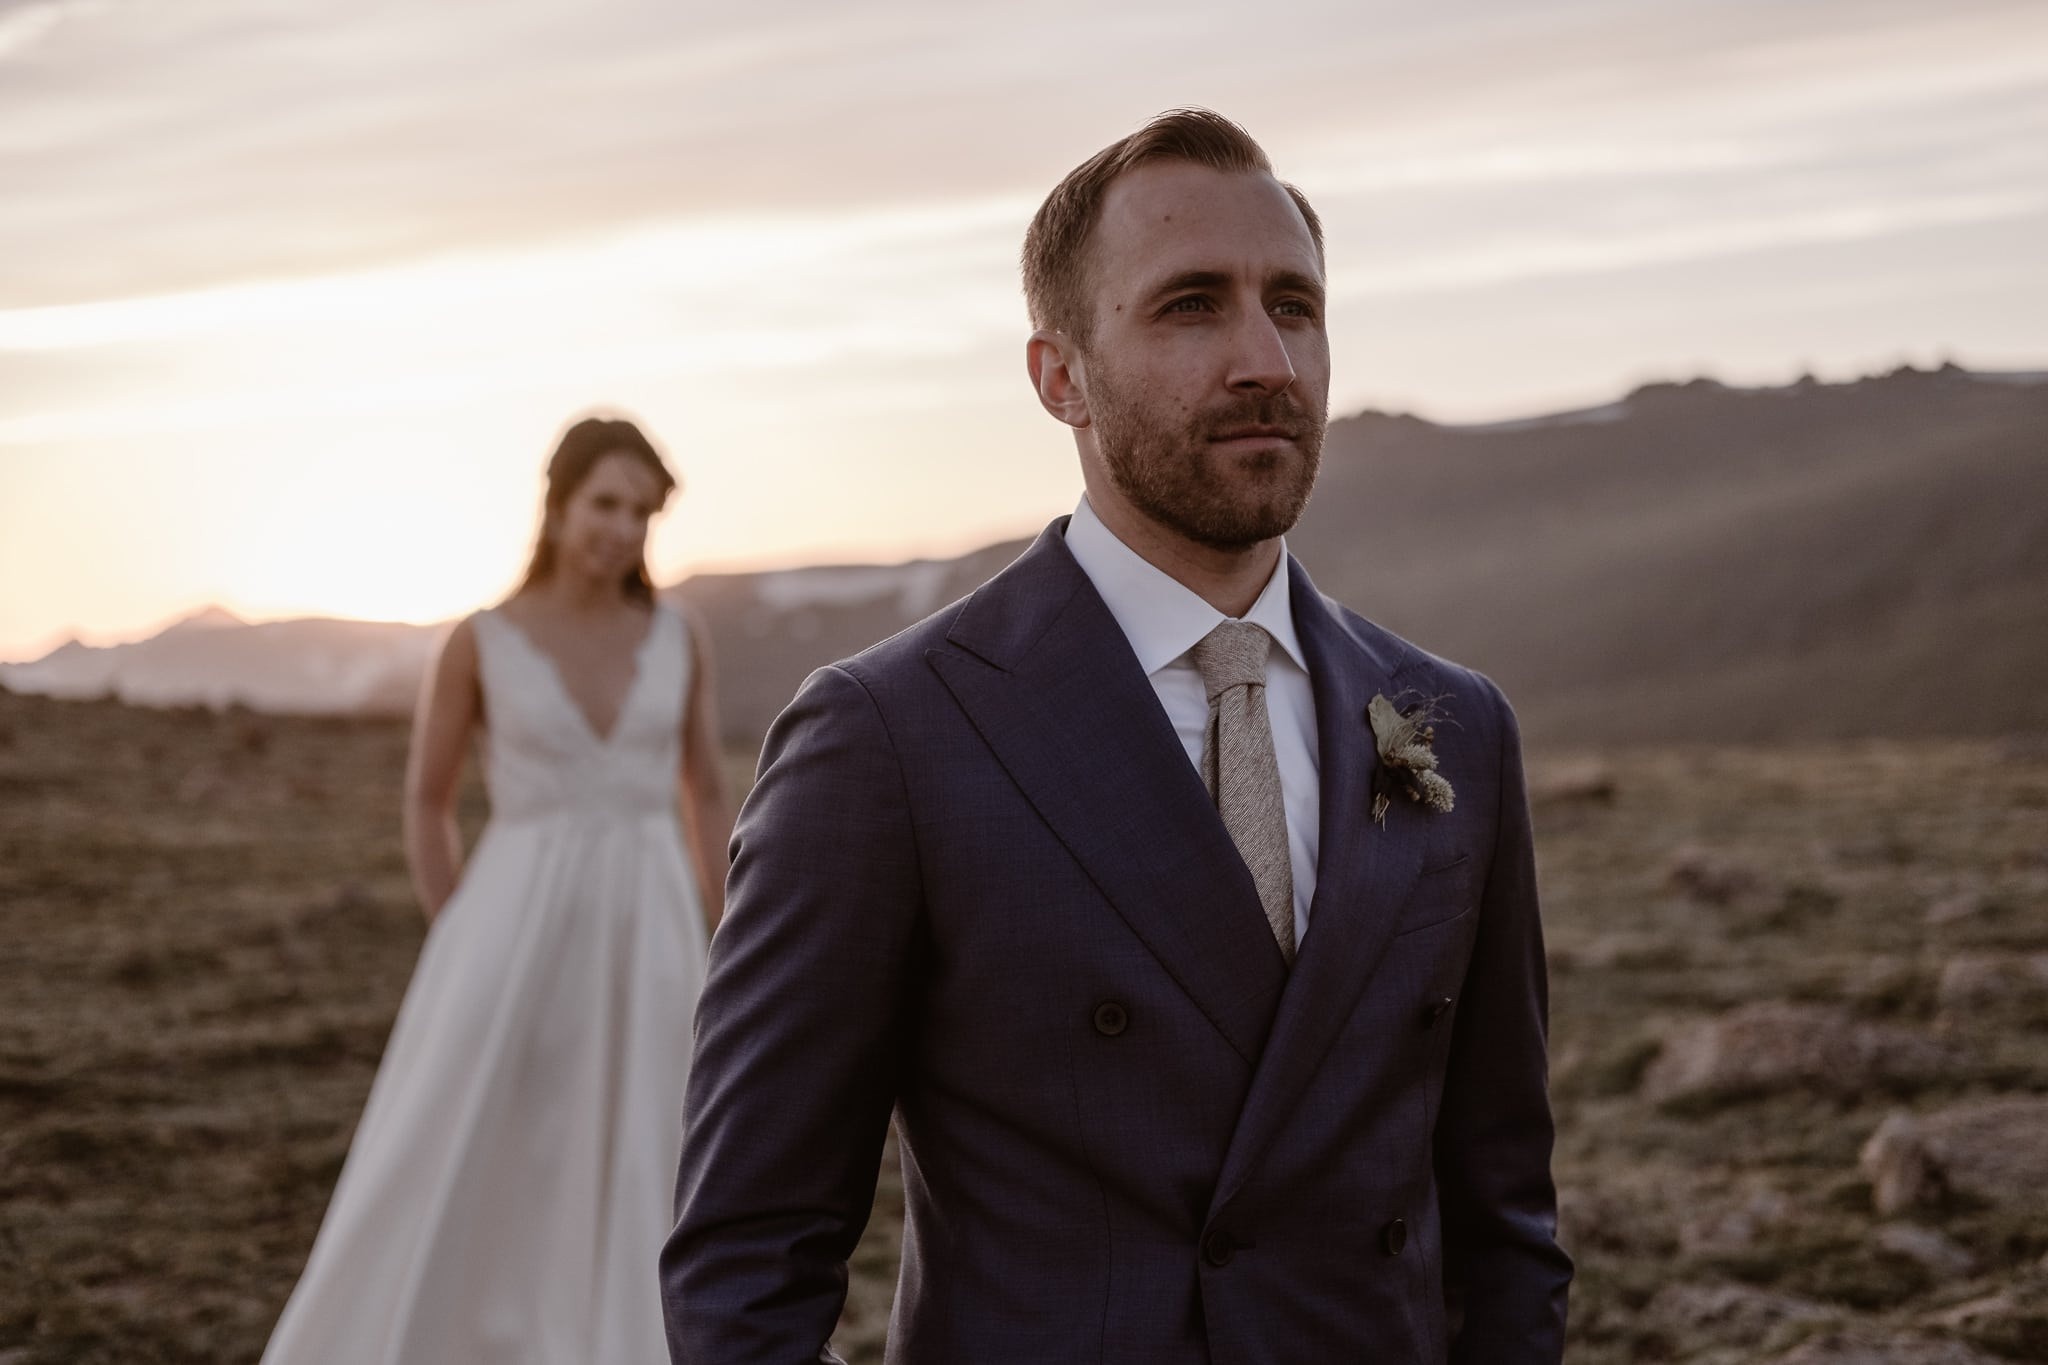 Trail Ridge Road Elopement Photographer, Colorado adventure wedding photography, mountain hiking elopement, bride and groom at sunset